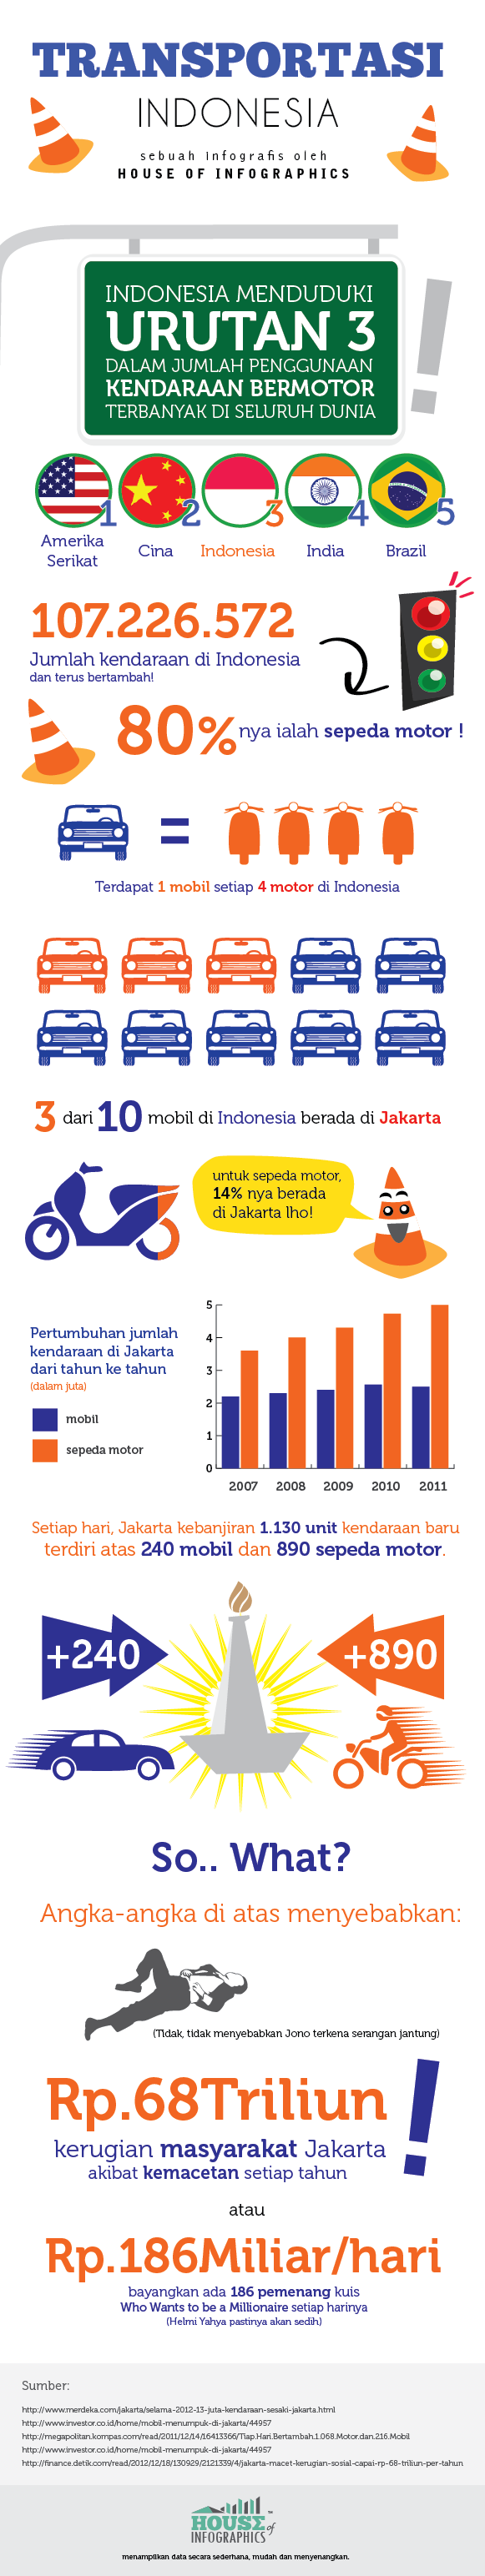 Infographics Transportasi Indonesia n-01